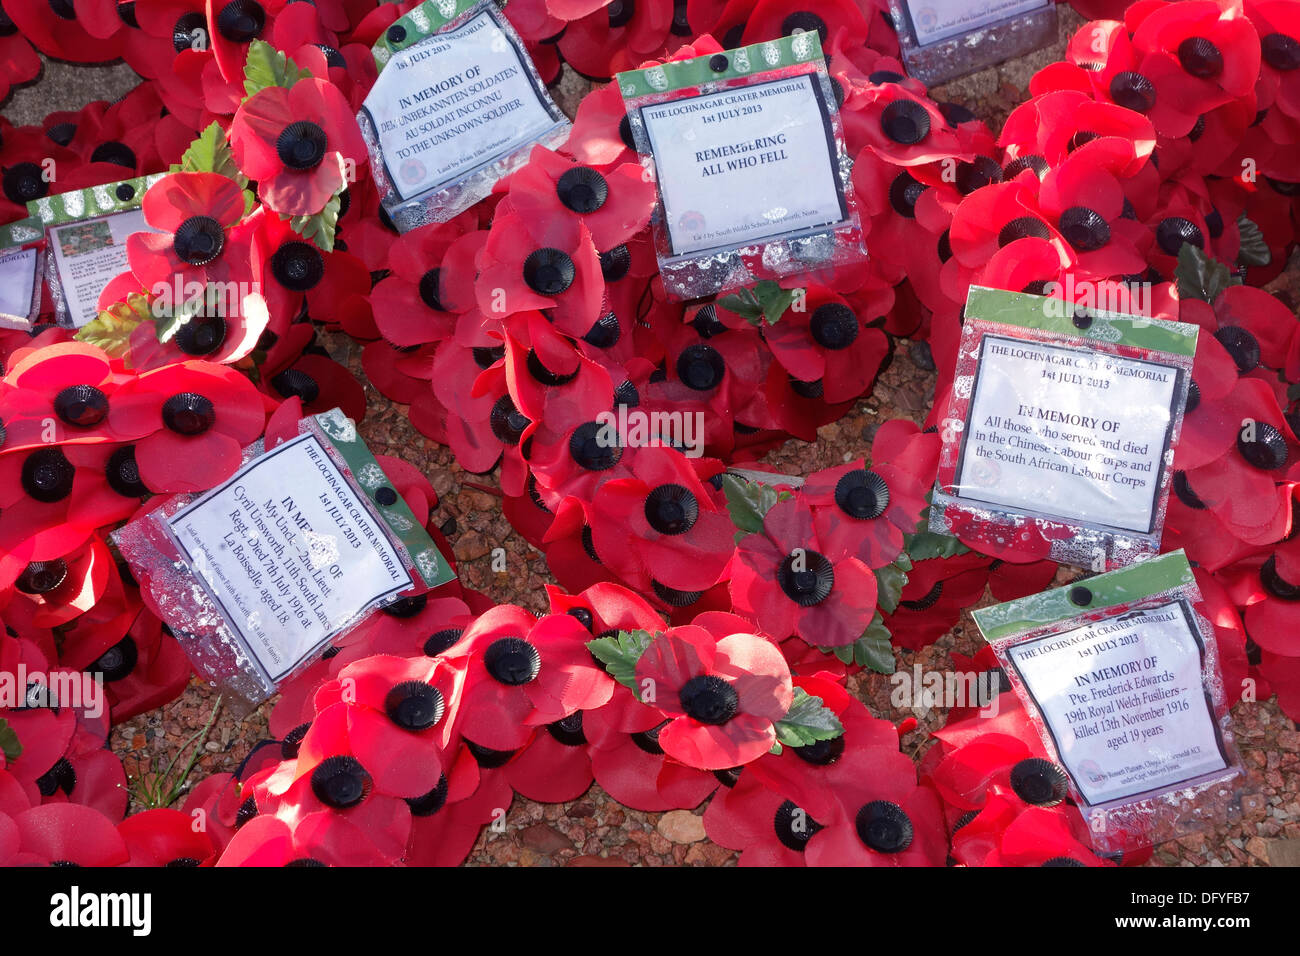 British red poppy wreaths at First World War One monument at WWI battlefield of the Battle of the Somme, Picardy, France - Stock Image